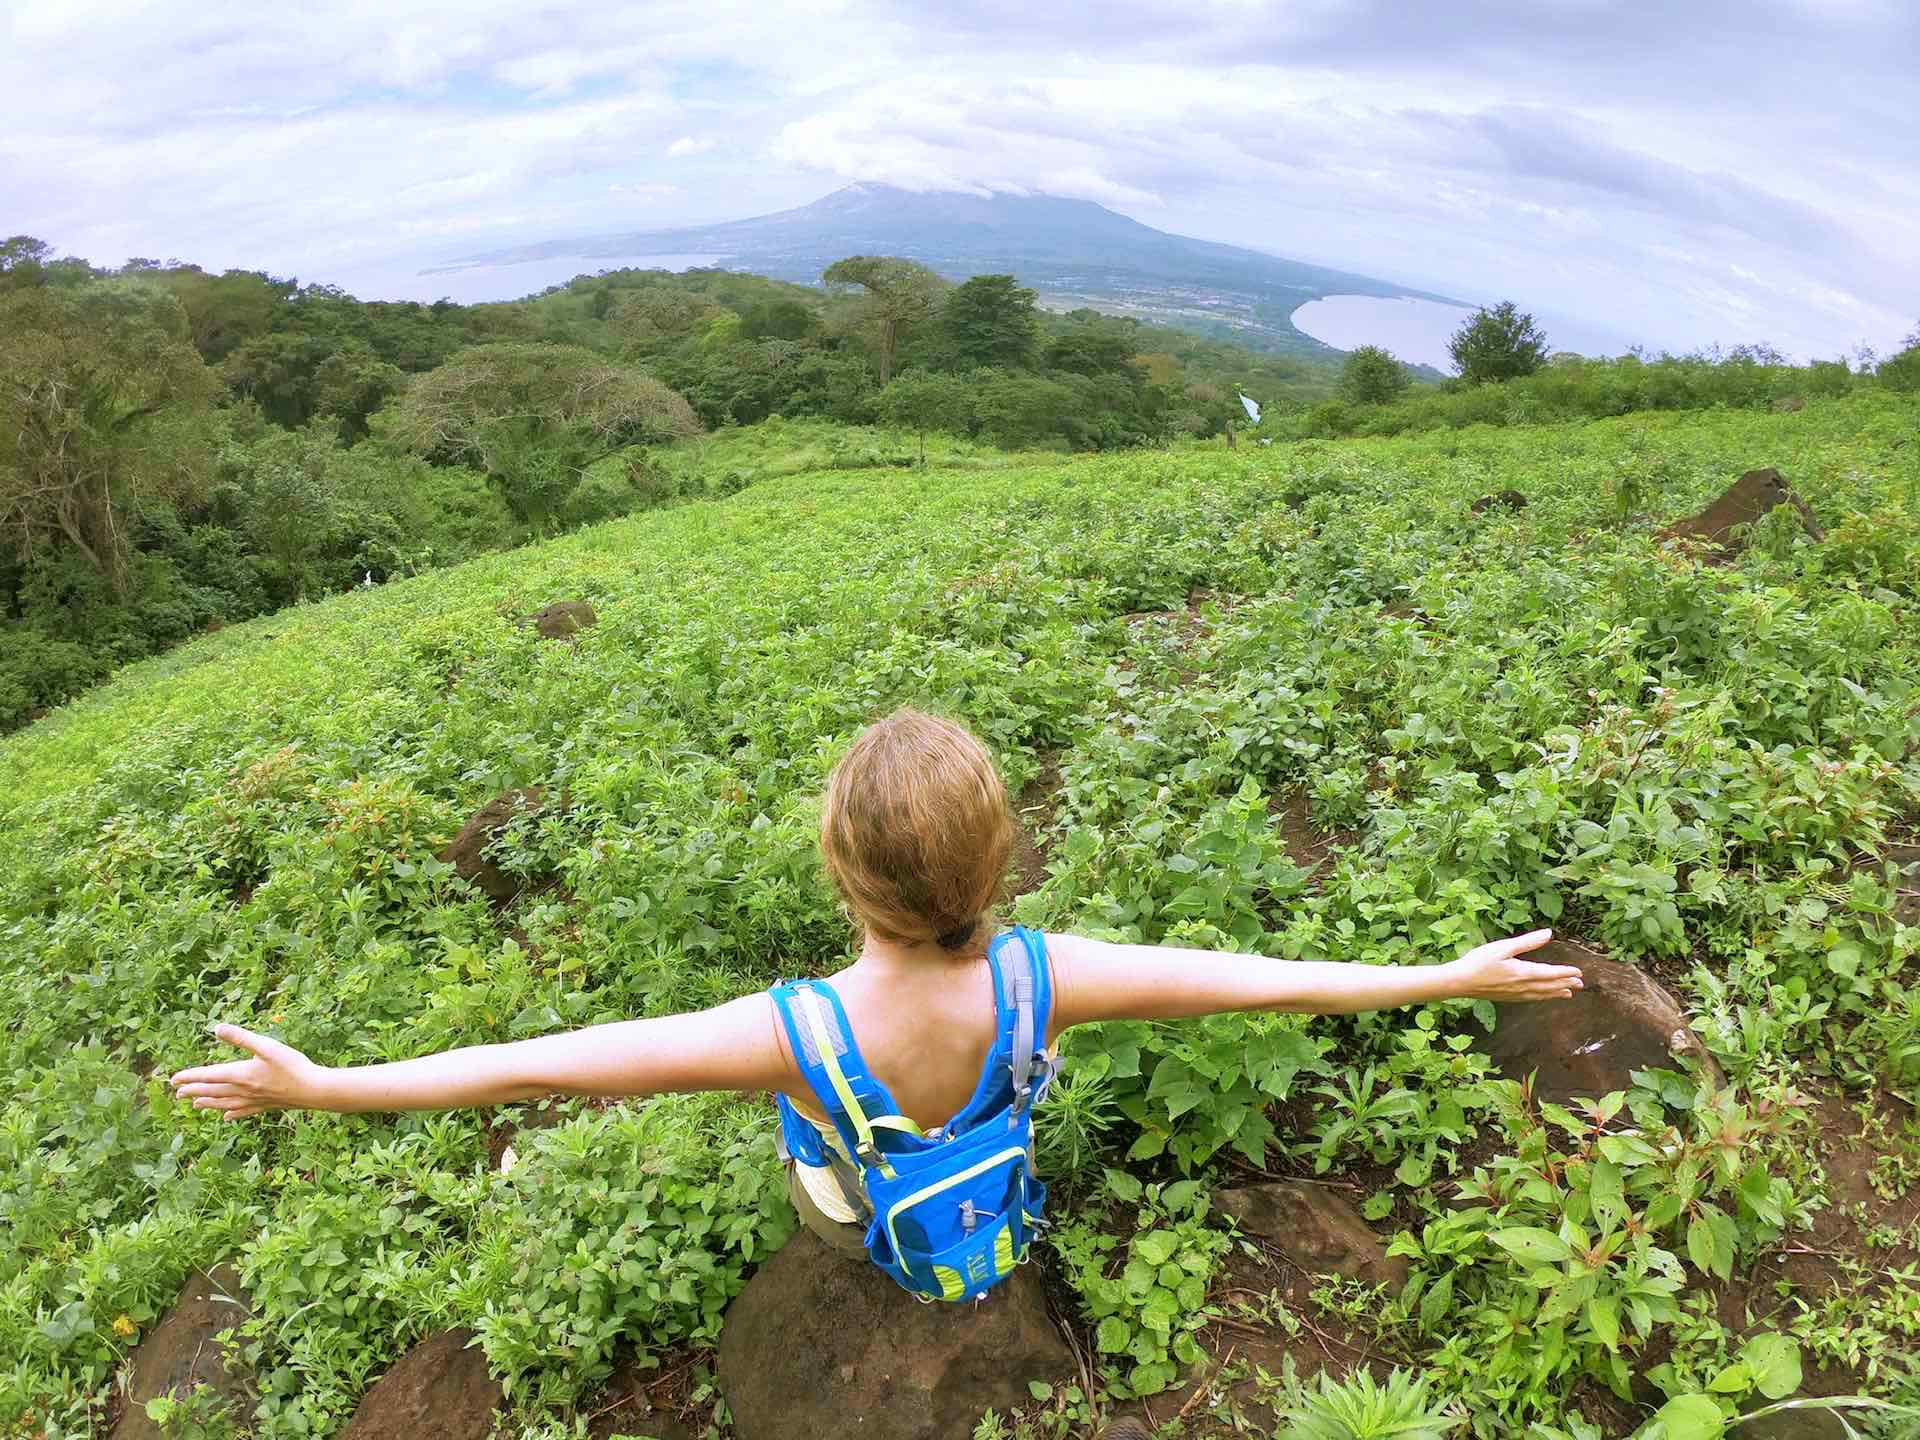 Nicaragua, Ometepe Island - the Kite Spot on the Volcanic Island surrounded by a huge Lake